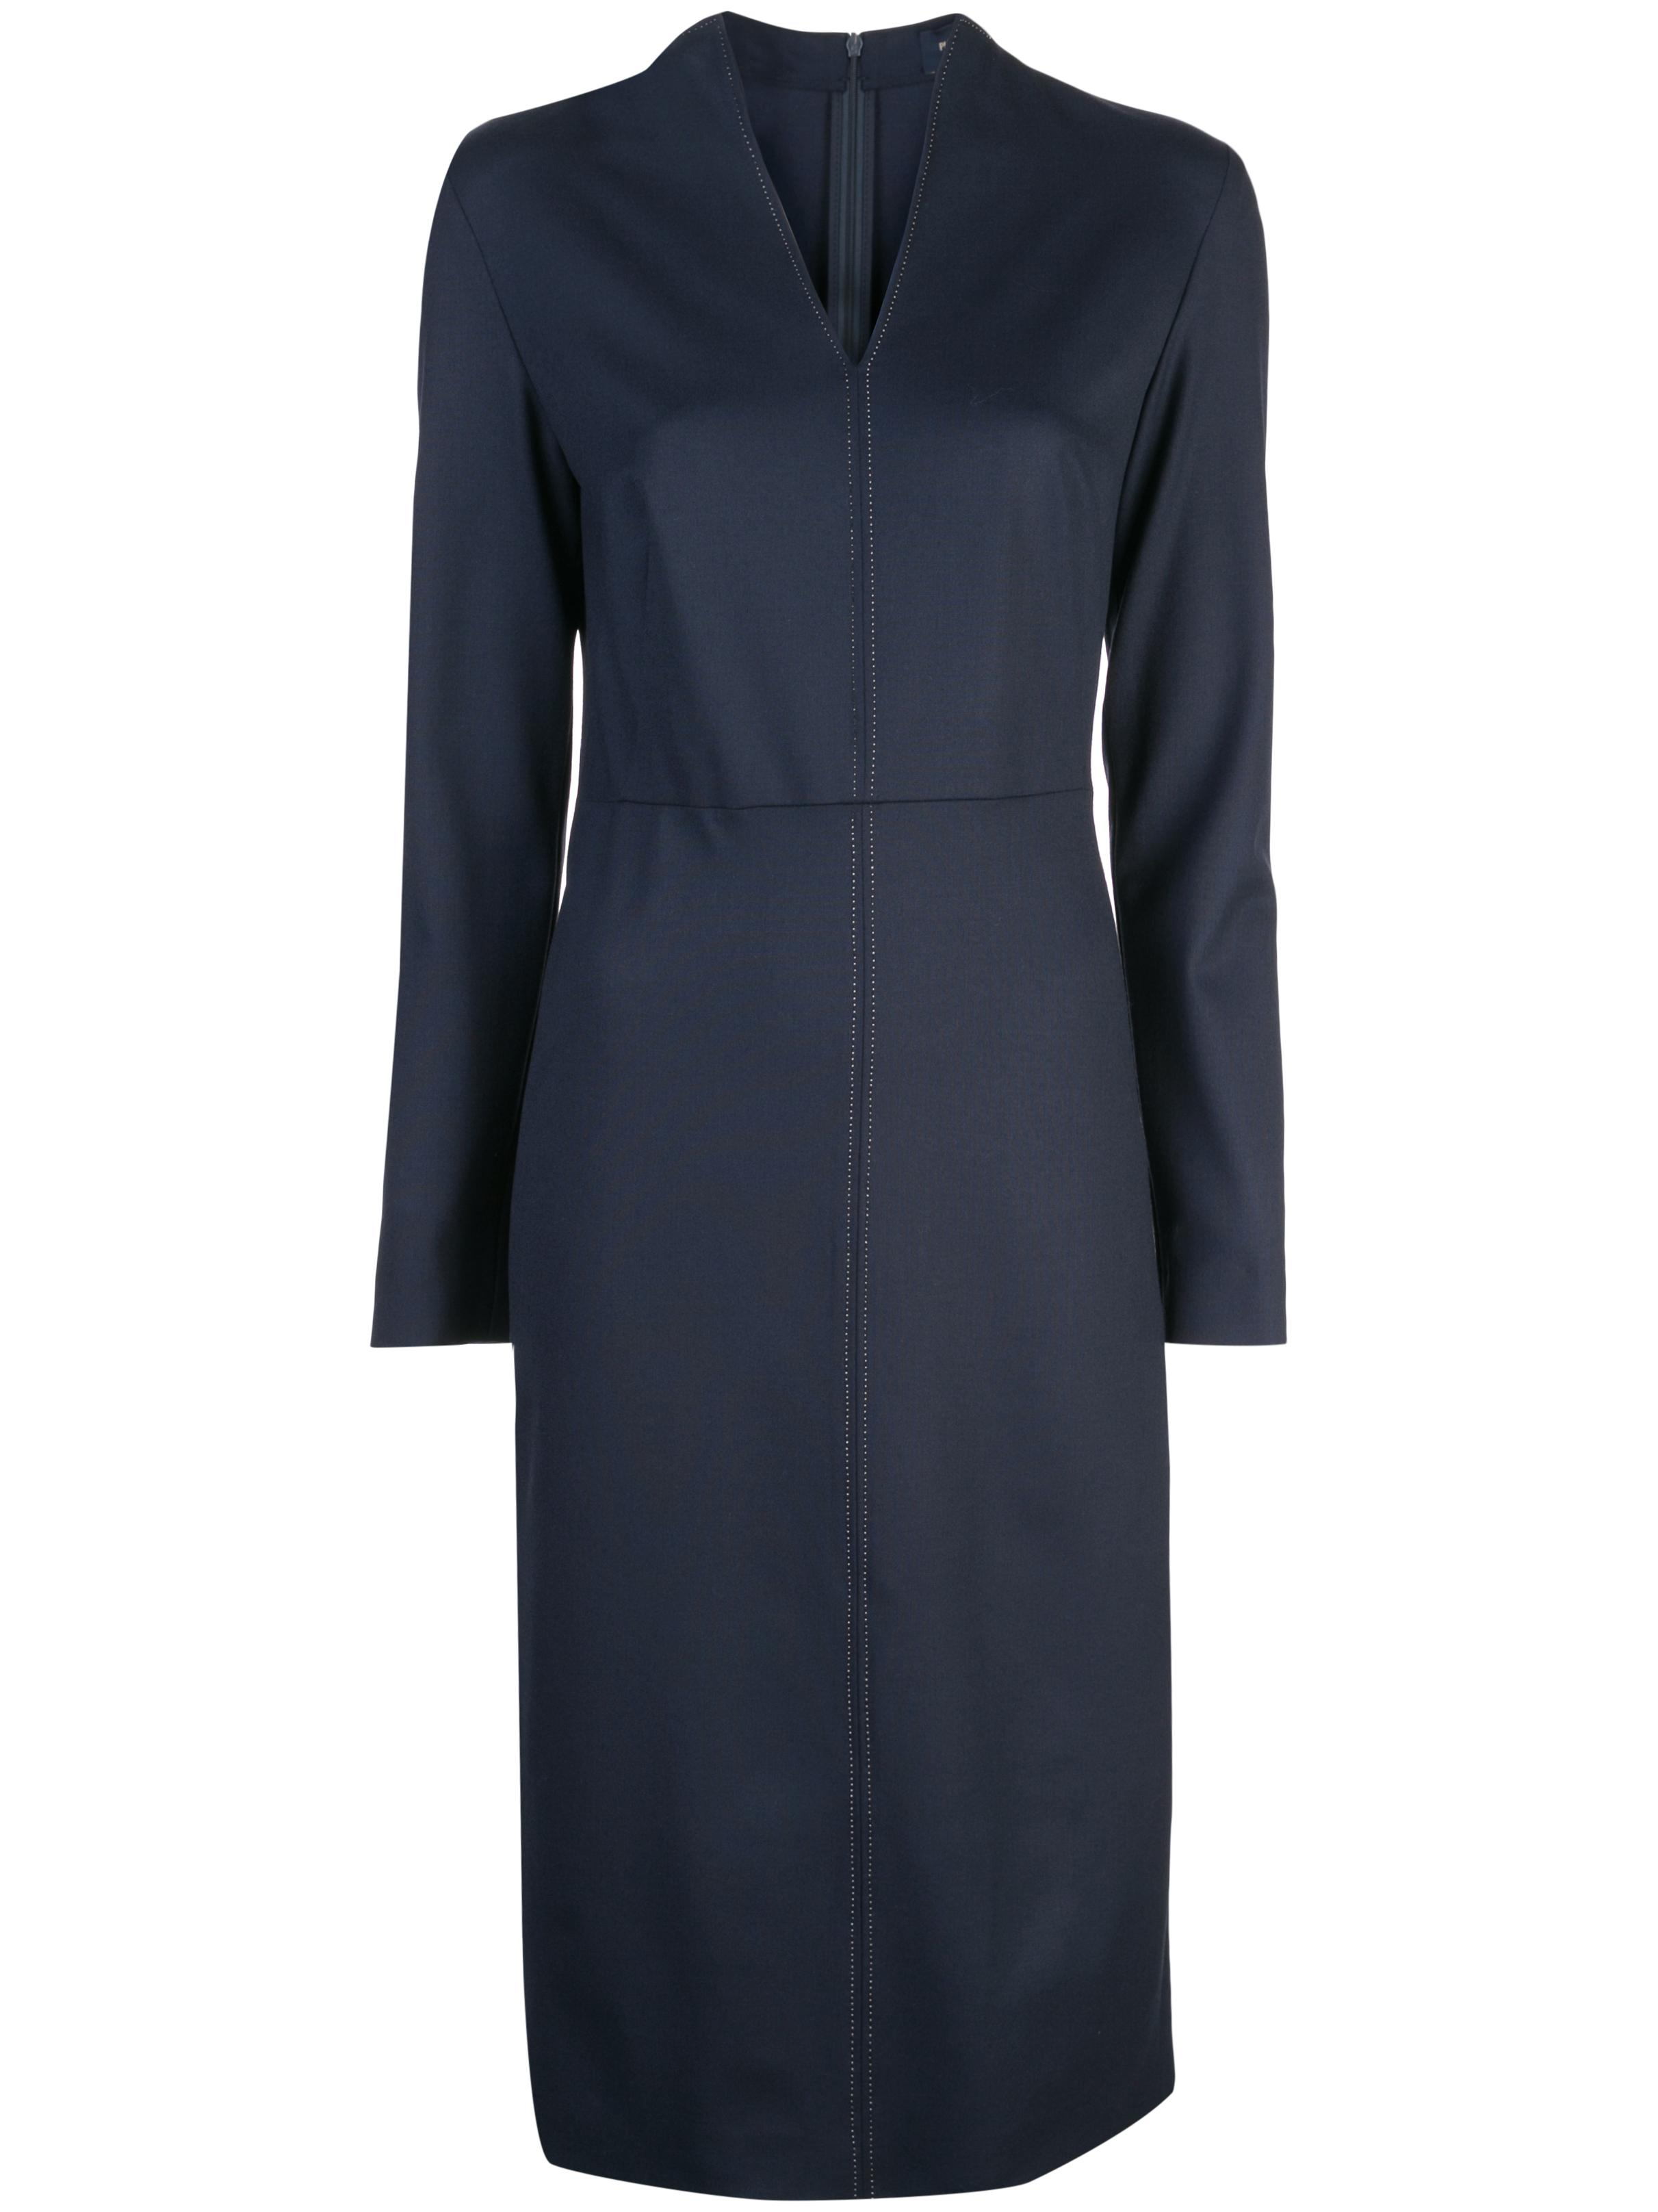 Long Sleeve V-Neck Sheath Dress